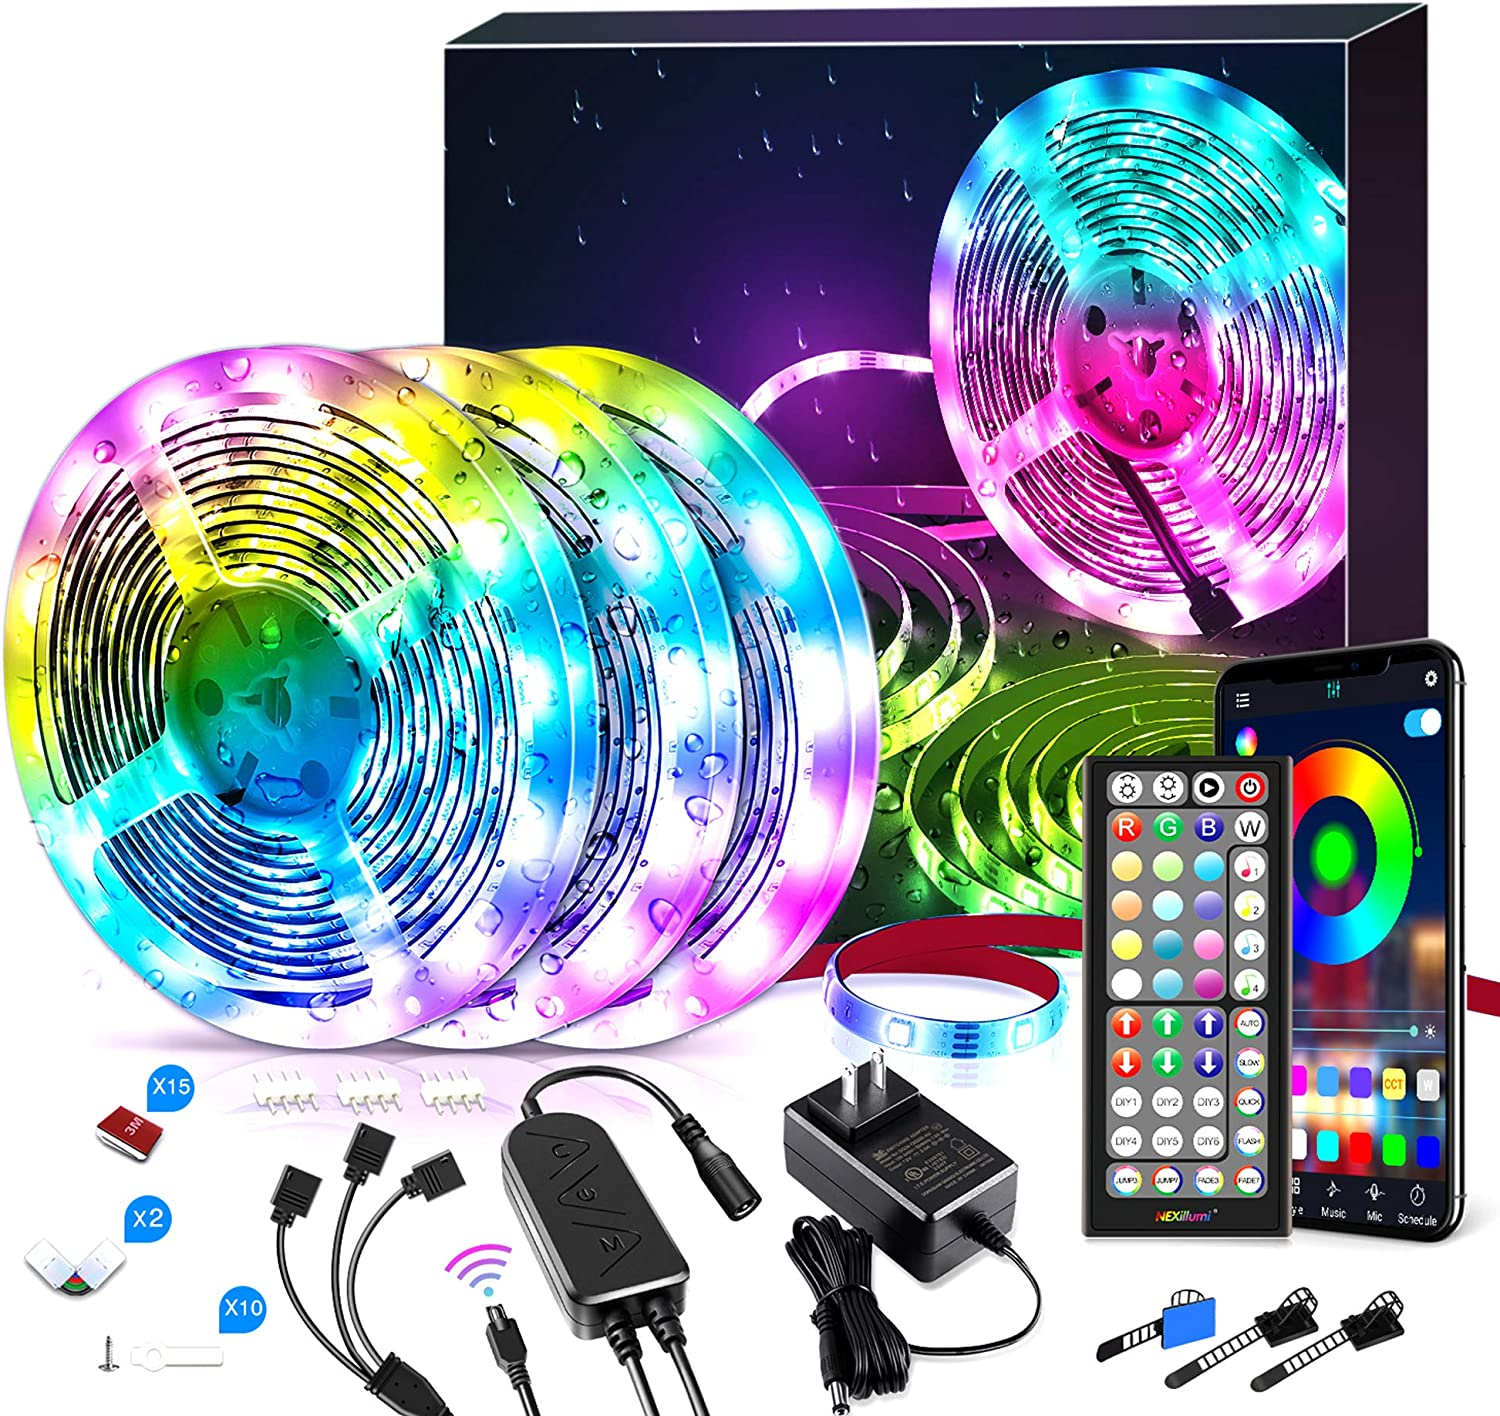 Waterproof 50 ft LED Lights, Color Changing RGB LED Strip Lights with Remote App Controlled LED Lights for Bedroom Decor, LED Light Strips for Rooms (50Ft APP+ Remote+ Mic Control+ 3-Button Switch)